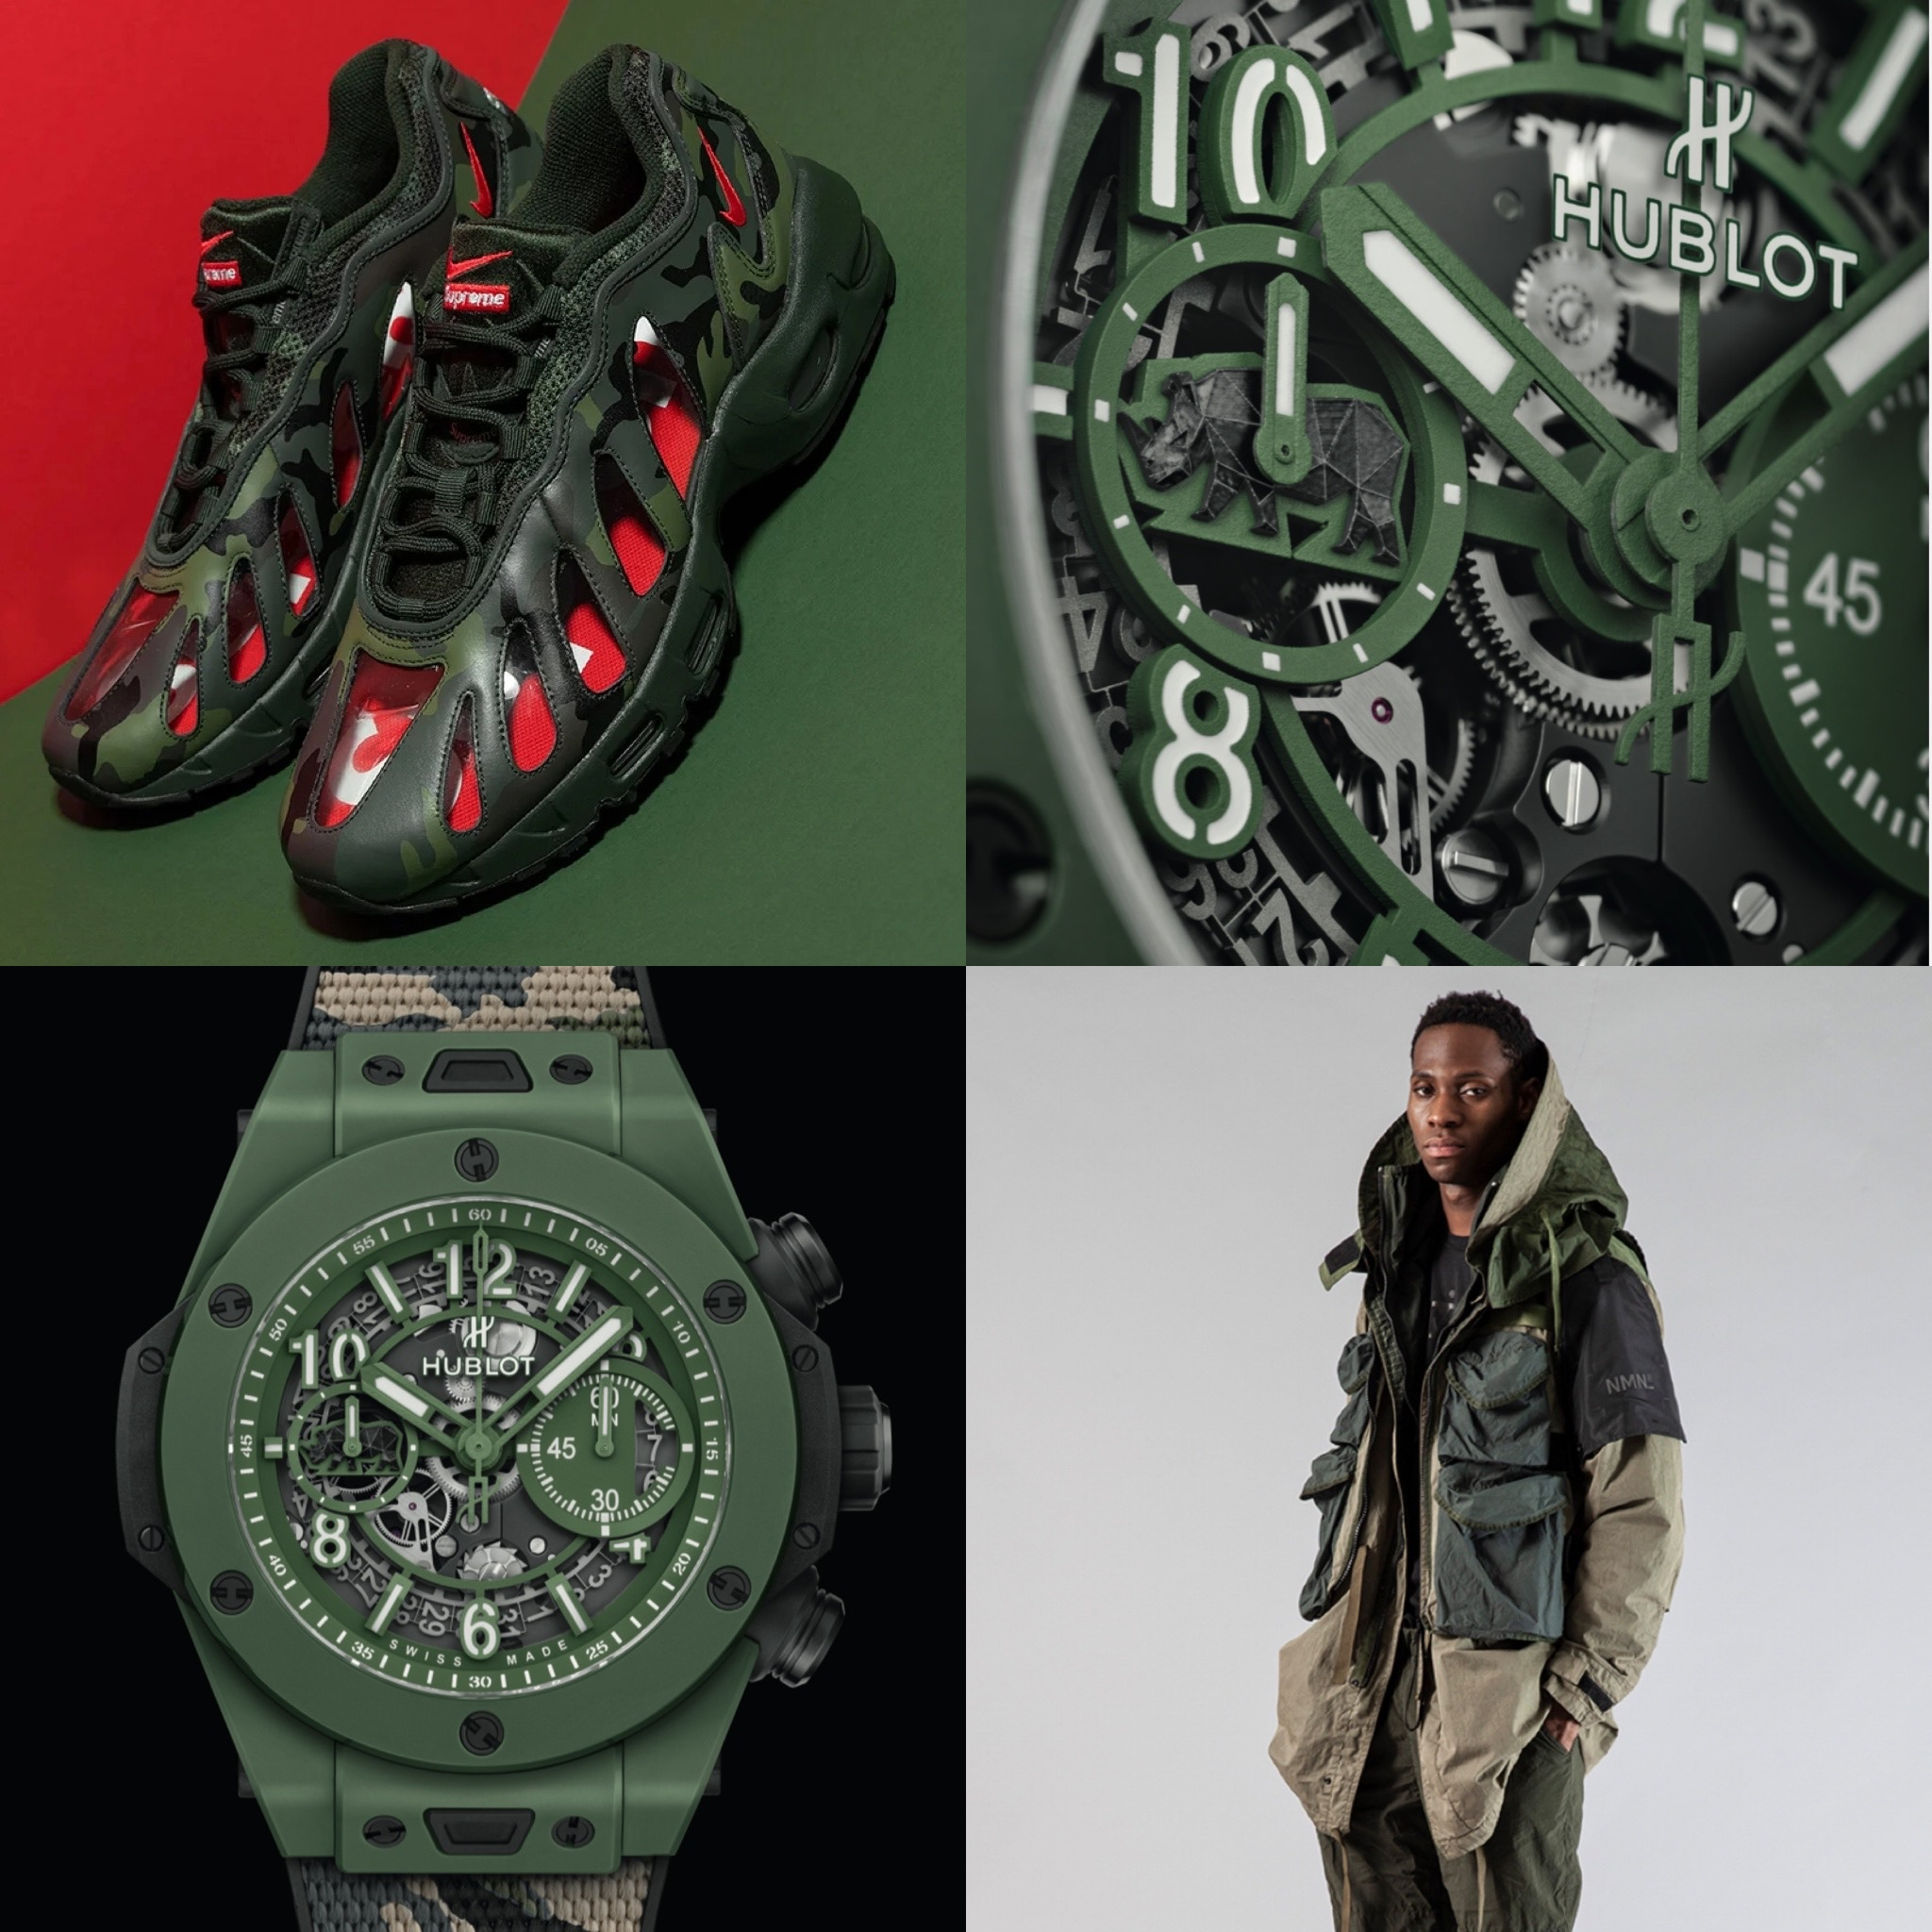 #Kixntix: Get eco-warrior chic with the new Hublot Big Bang Unico Sorai lifted with a pop of Supreme red